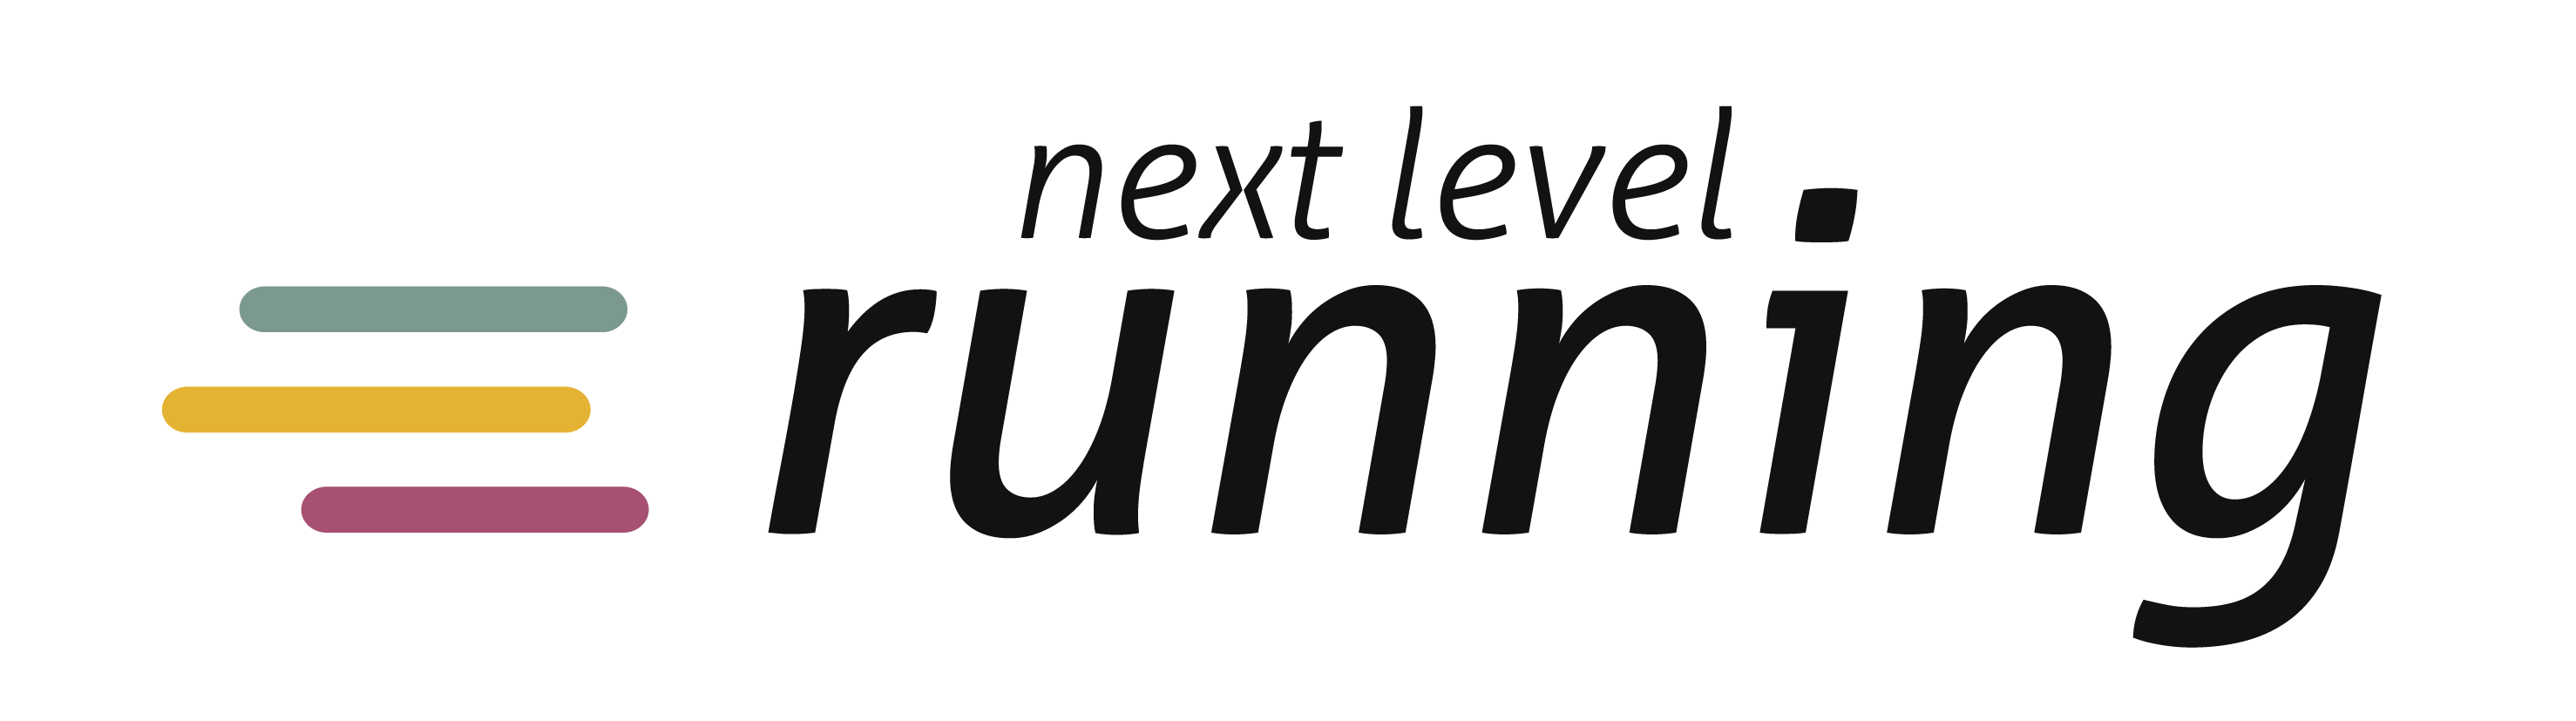 Логотип next level.running GmbH